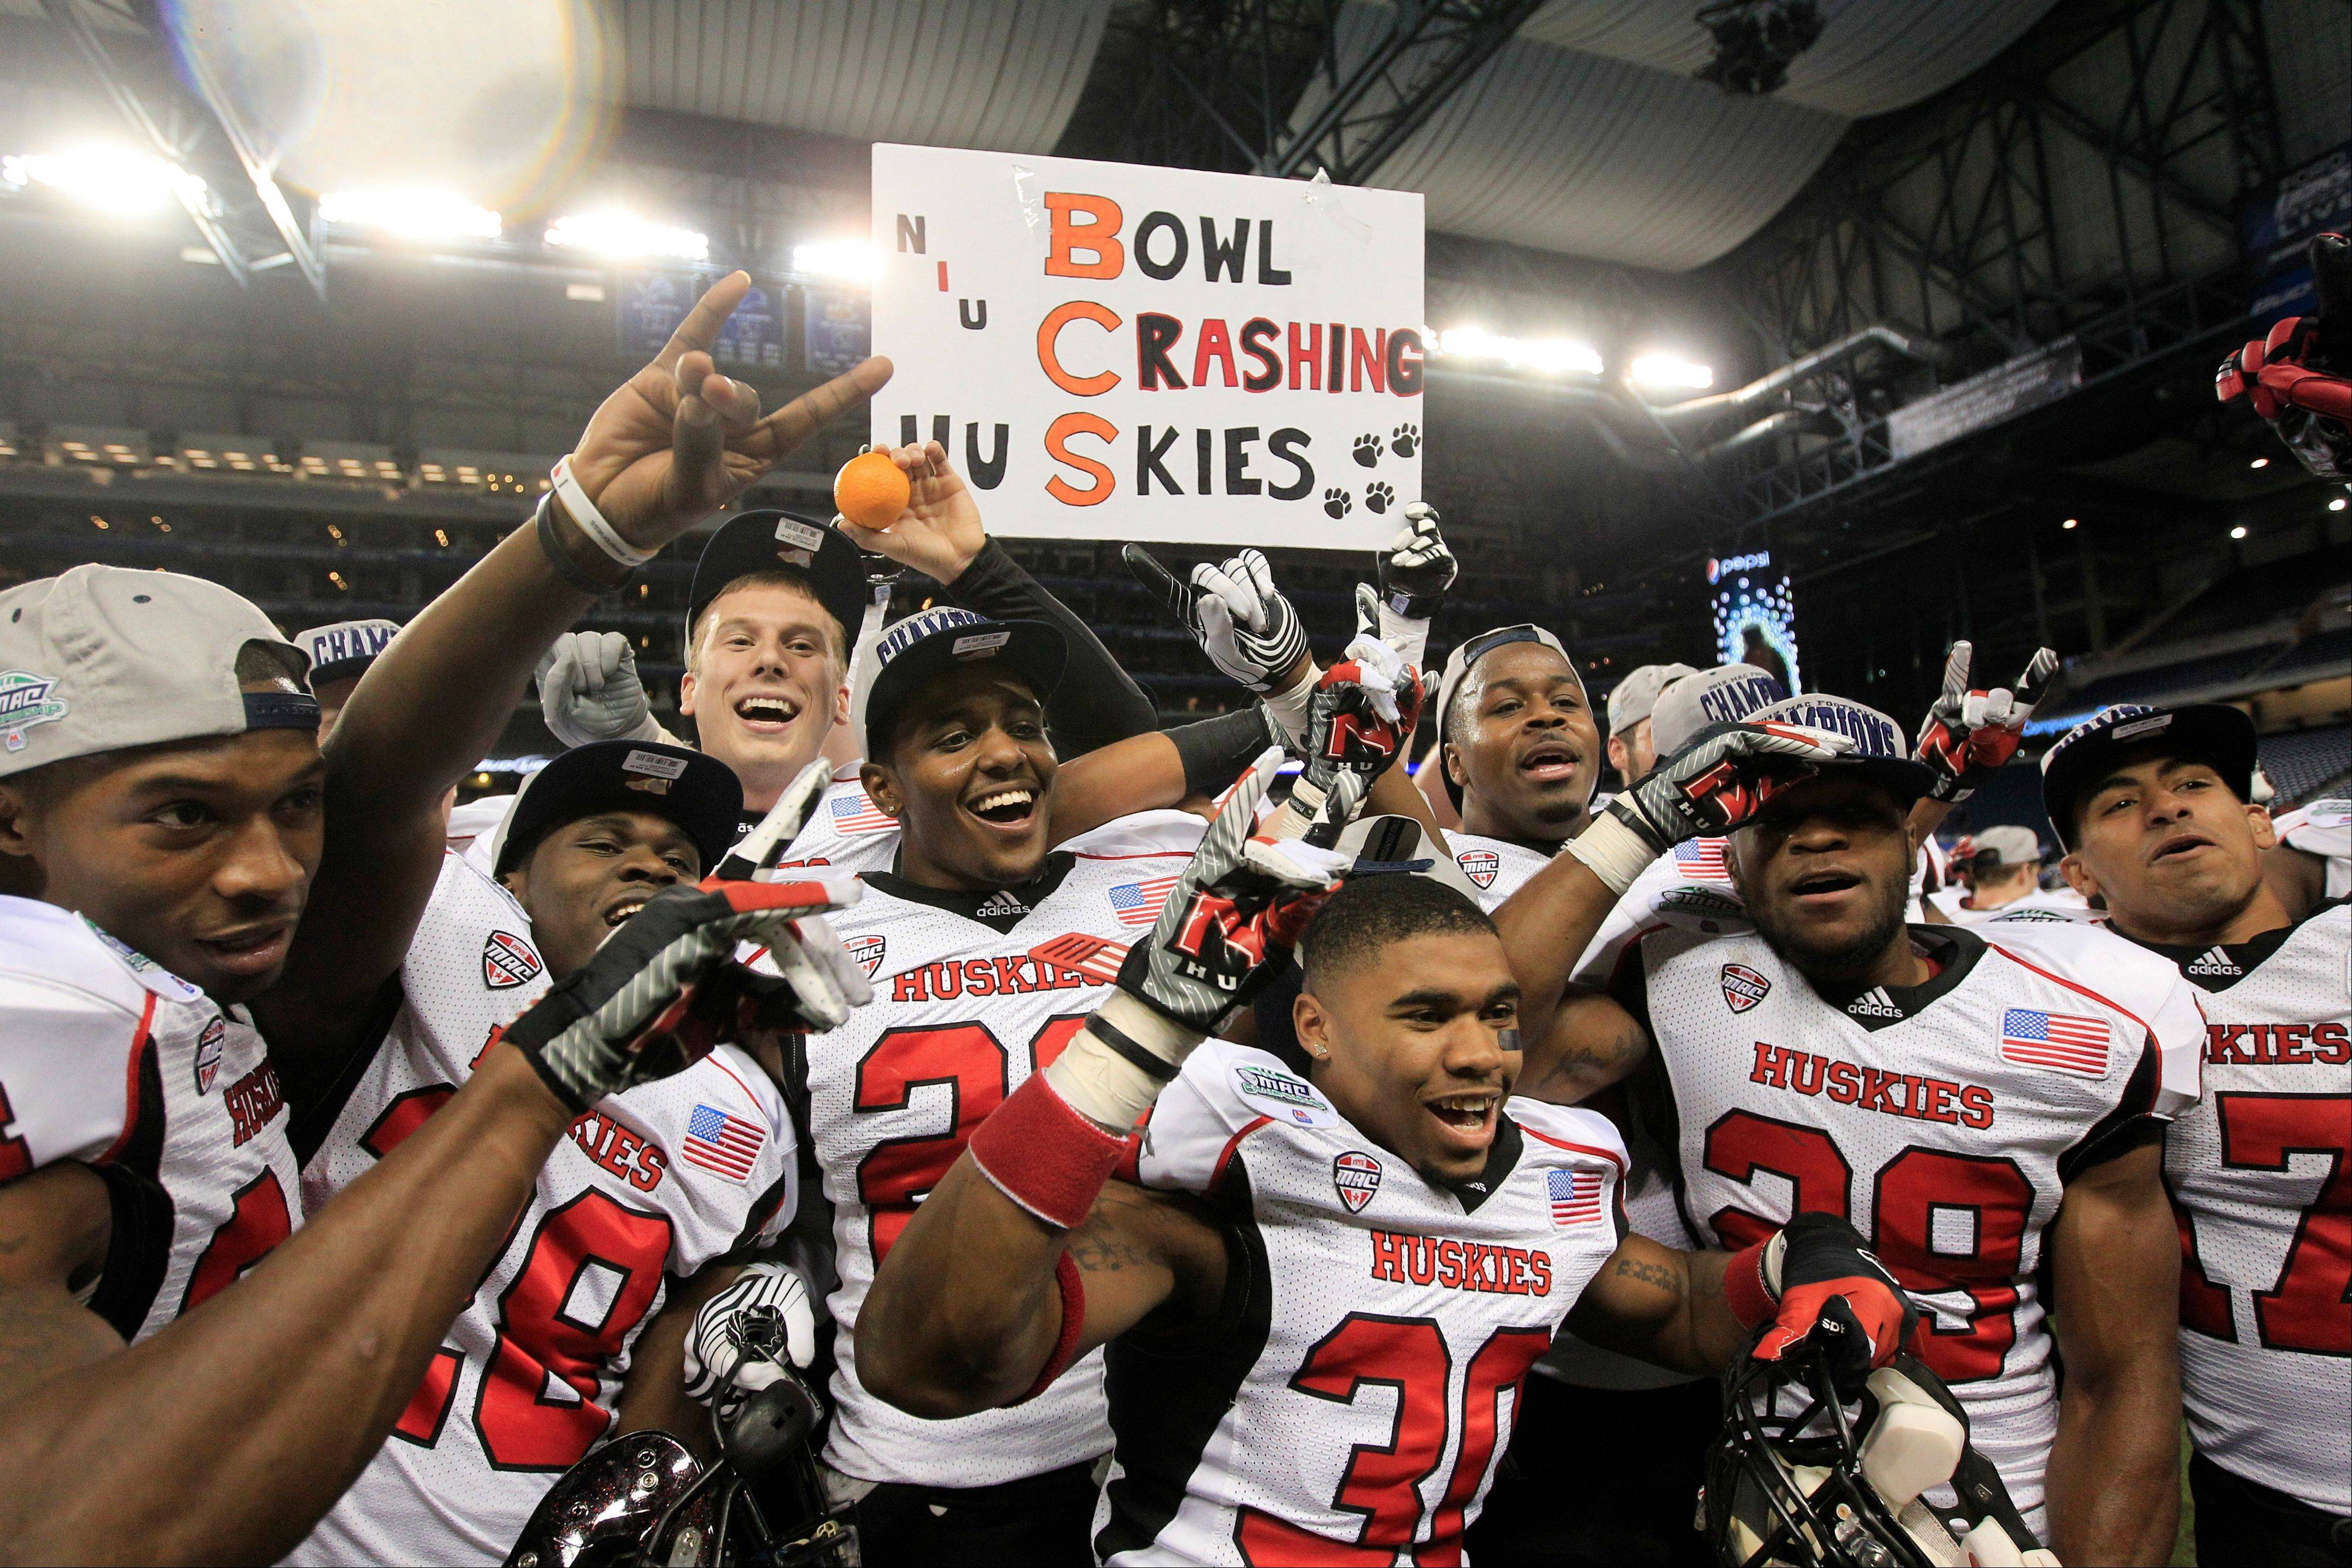 The Northern Illinois team poses for photographers Friday after defeating Kent State 44-37 in double overtime.